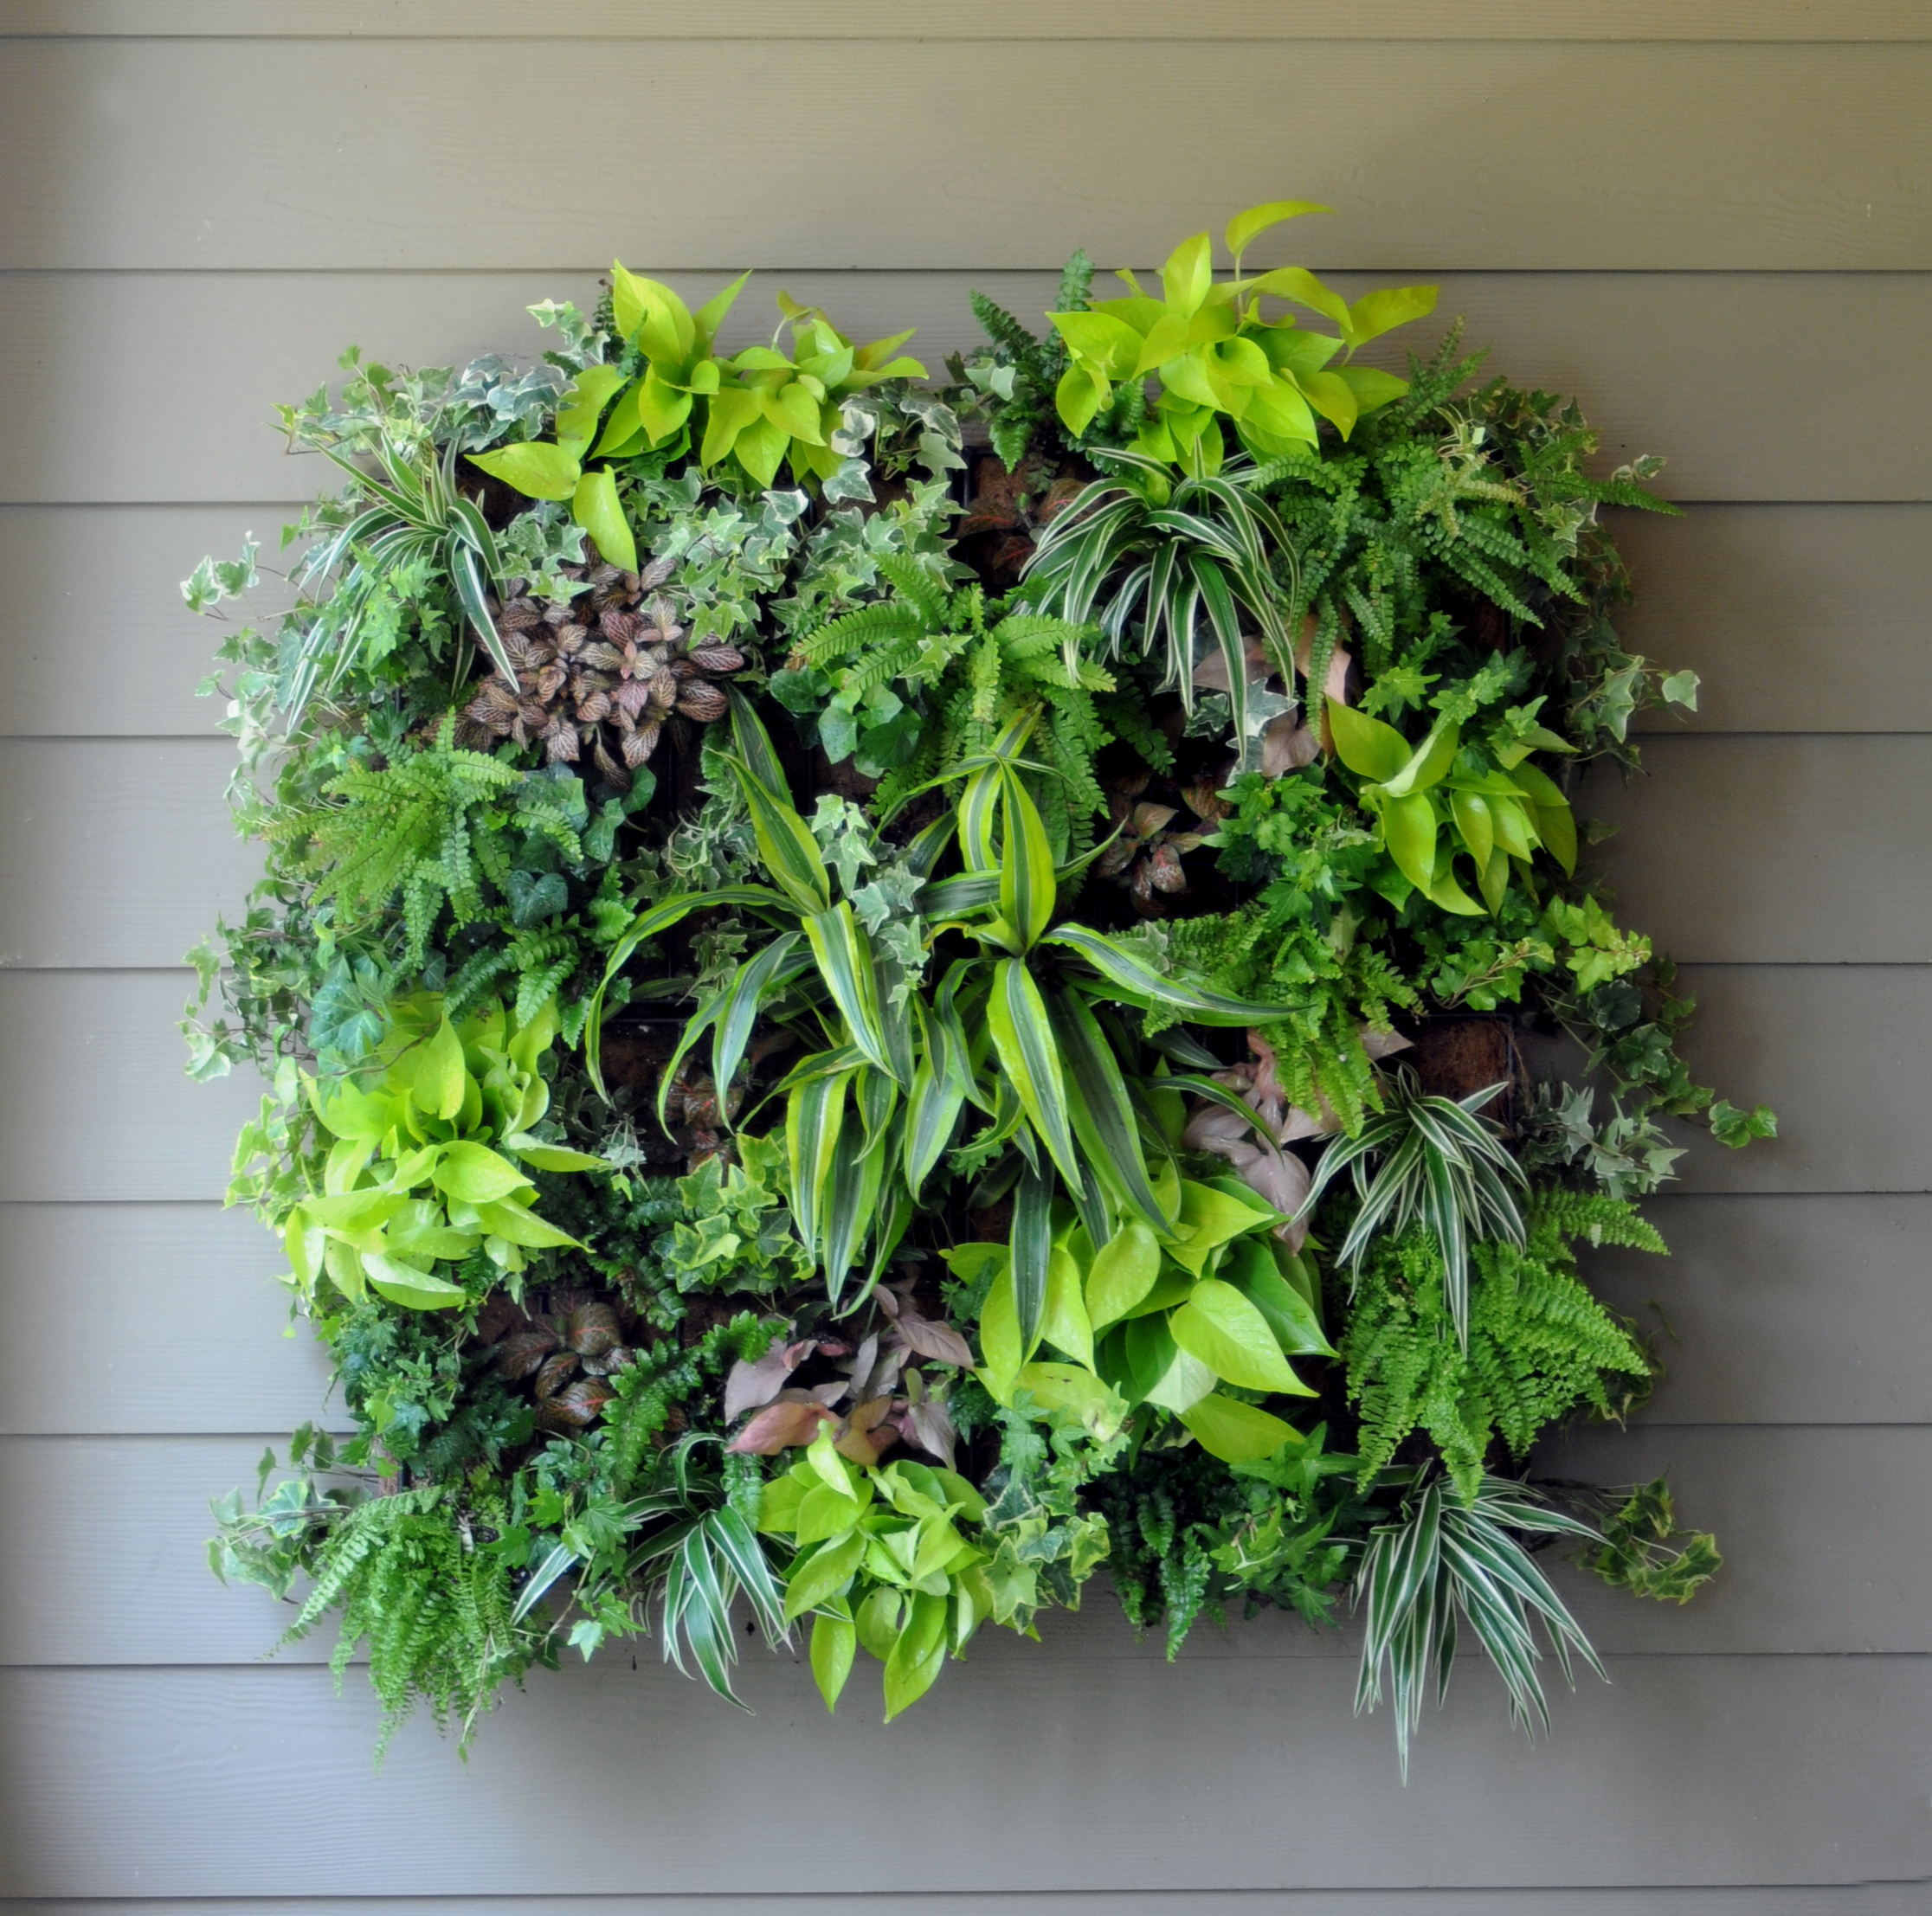 Vertical Gardens | City Garden Ideas